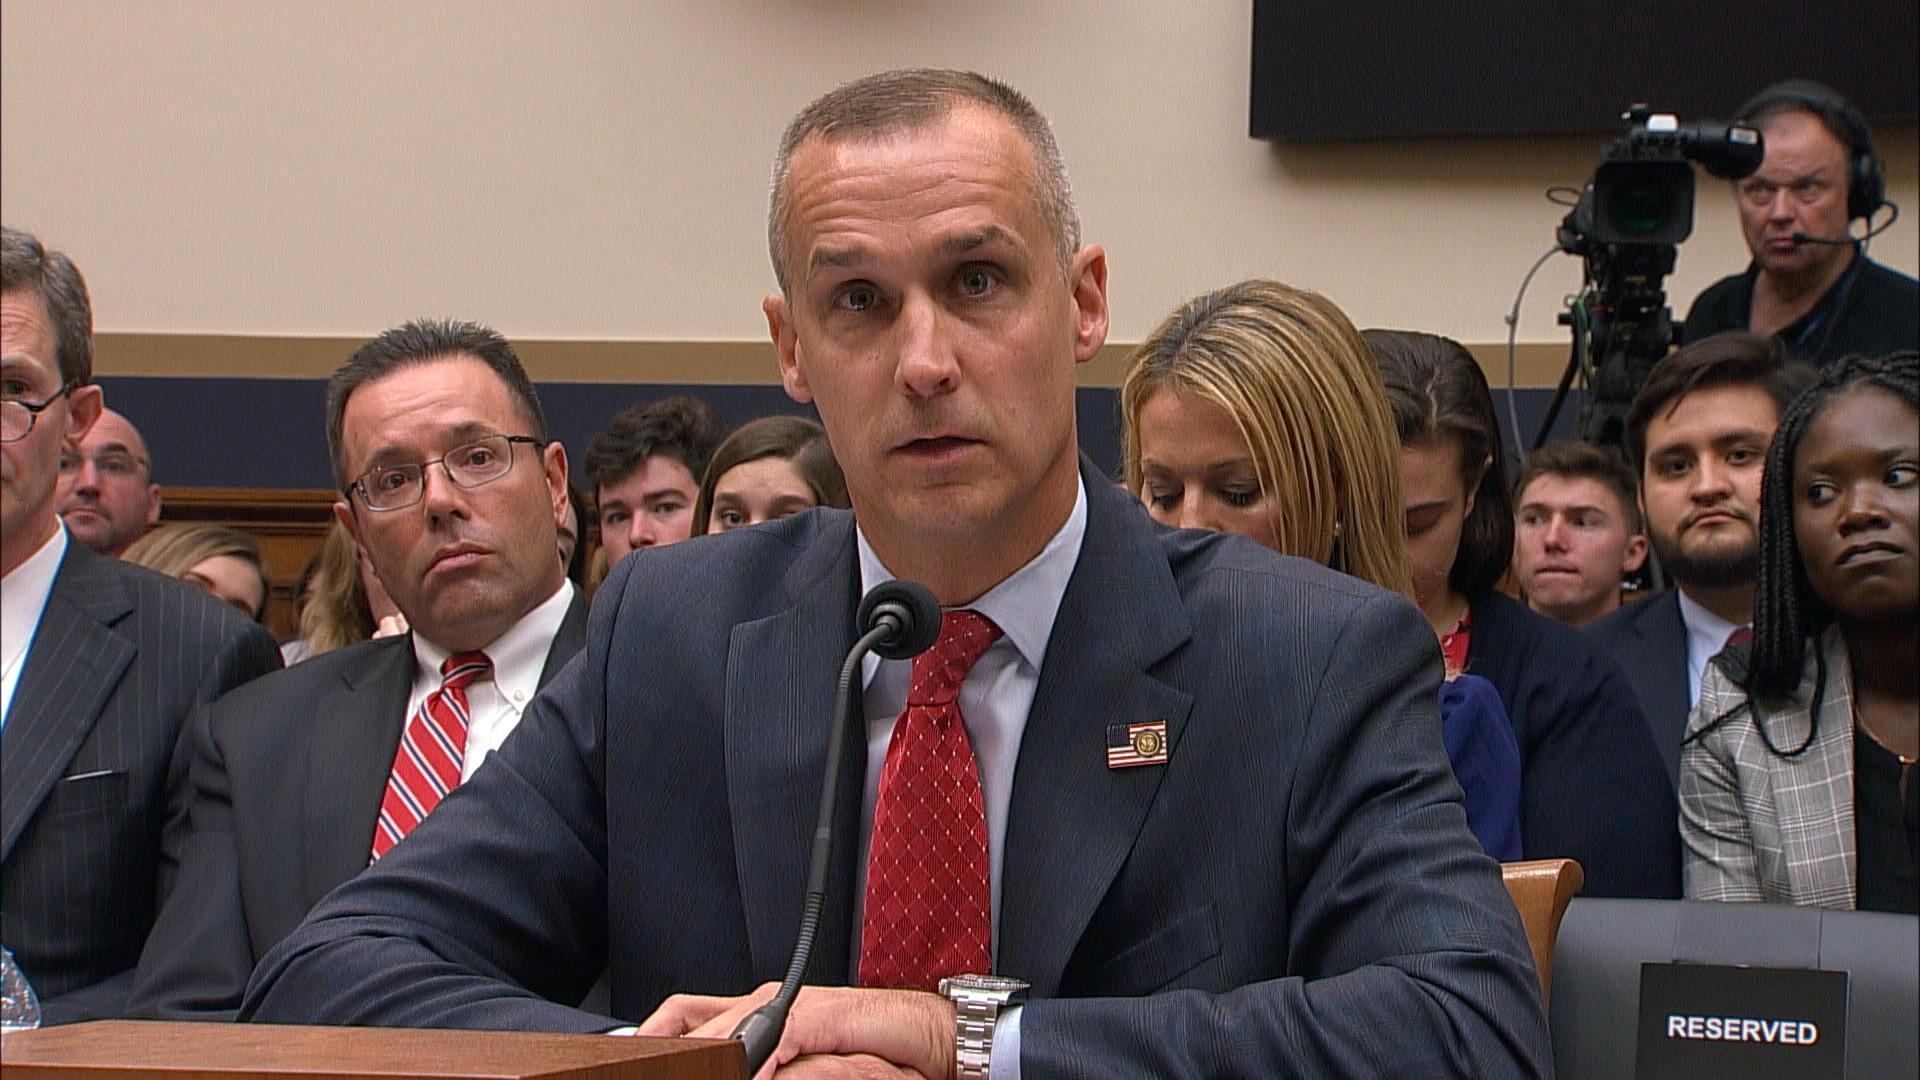 'You're not going to stonewall me!': Democrats press Lewandowski at fiery Hill hearing